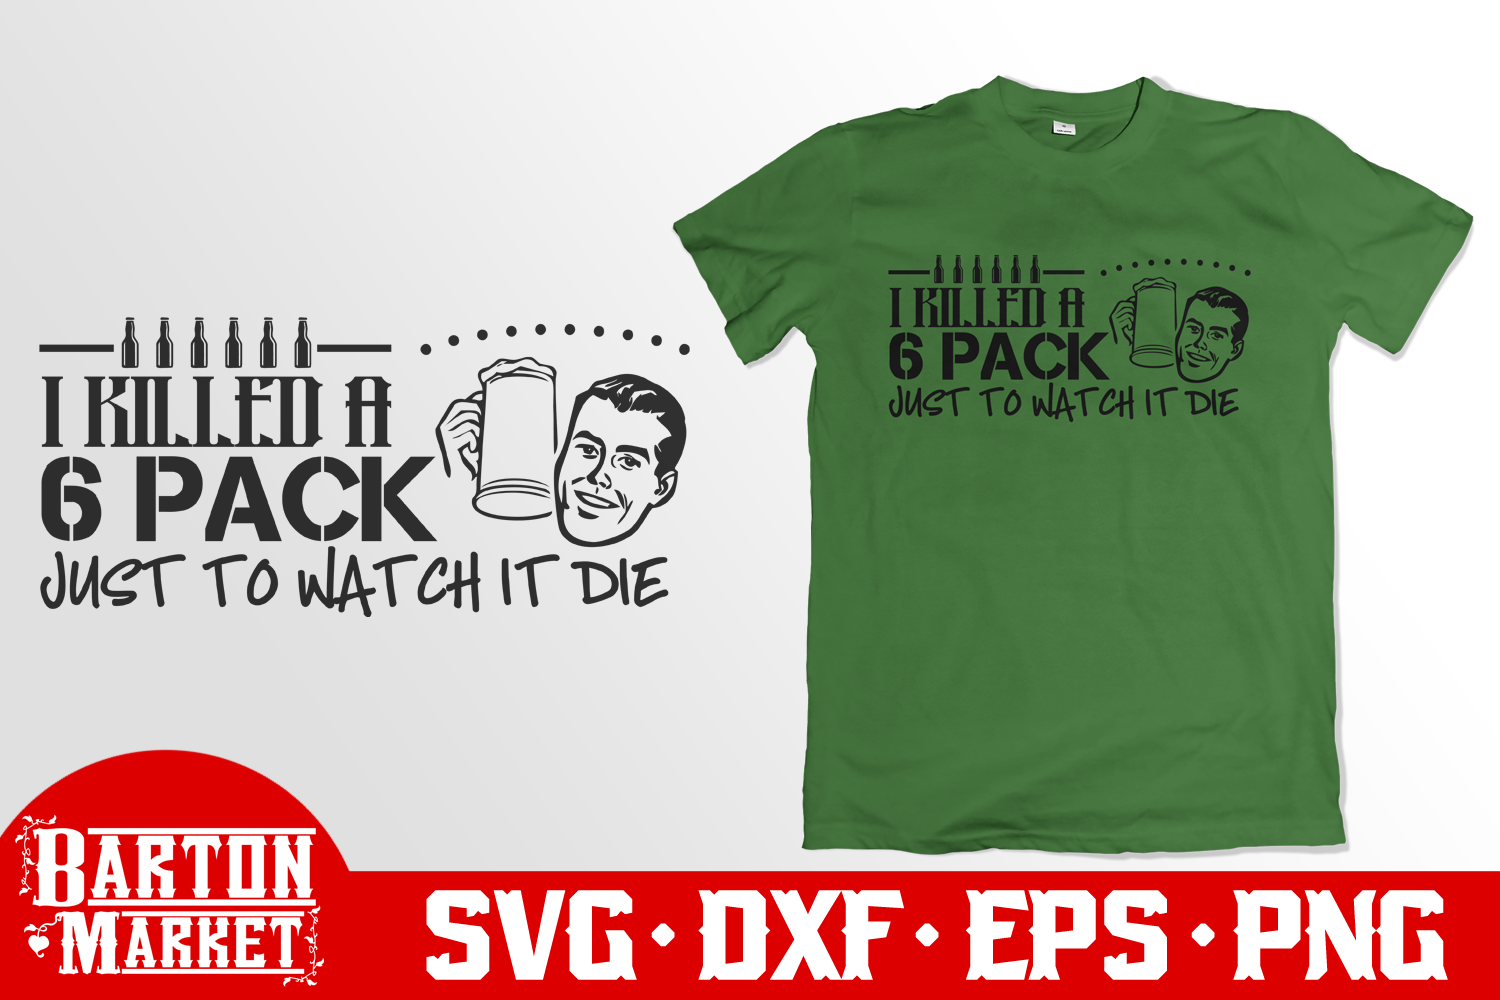 I Just Killed A 6 Pack Just To Watch It Die SVG DXF EPS PNG example image 1